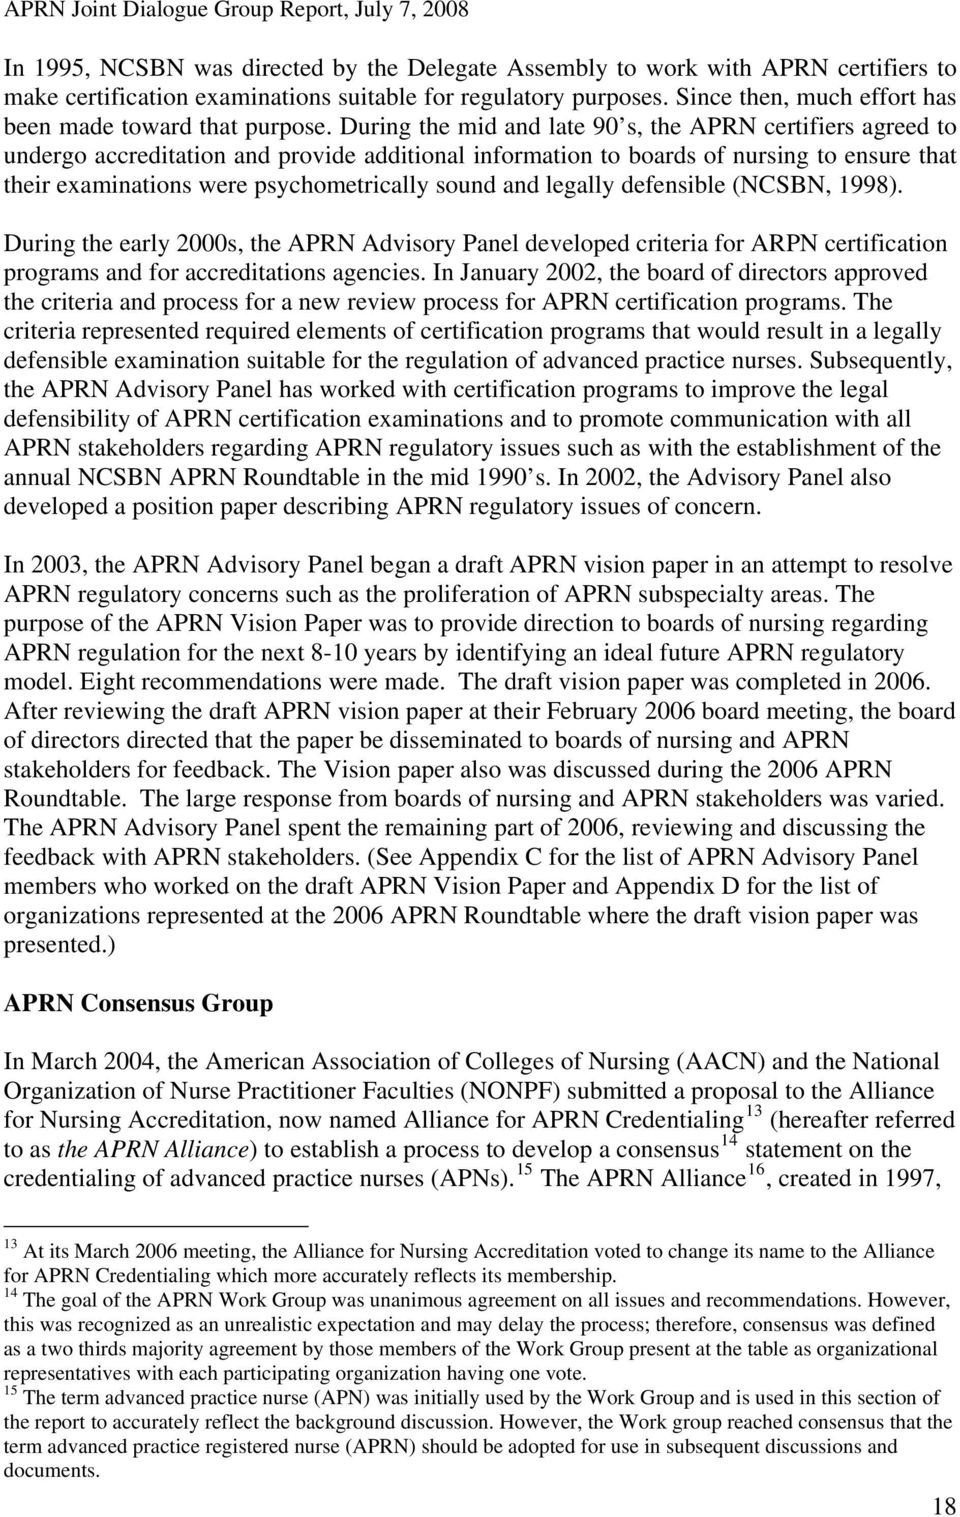 During the mid and late 90 s, the APRN certifiers agreed to undergo accreditation and provide additional information to boards of nursing to ensure that their examinations were psychometrically sound